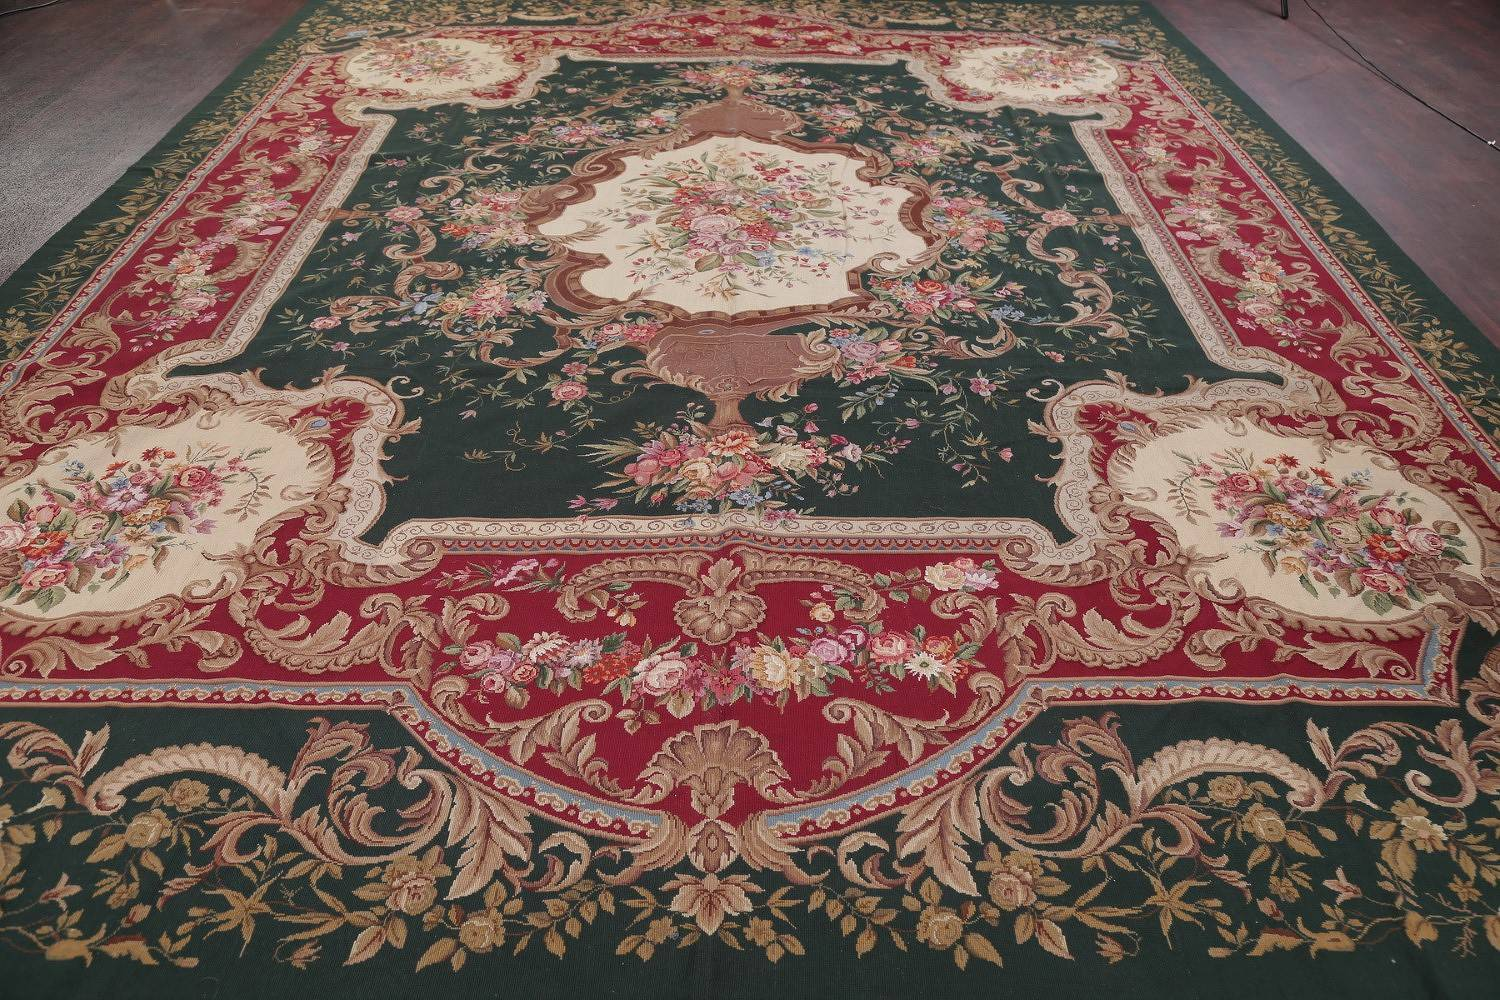 Floral Green Savonnerie Aubusson Chinese Oriental Area Rug Wool 12x15